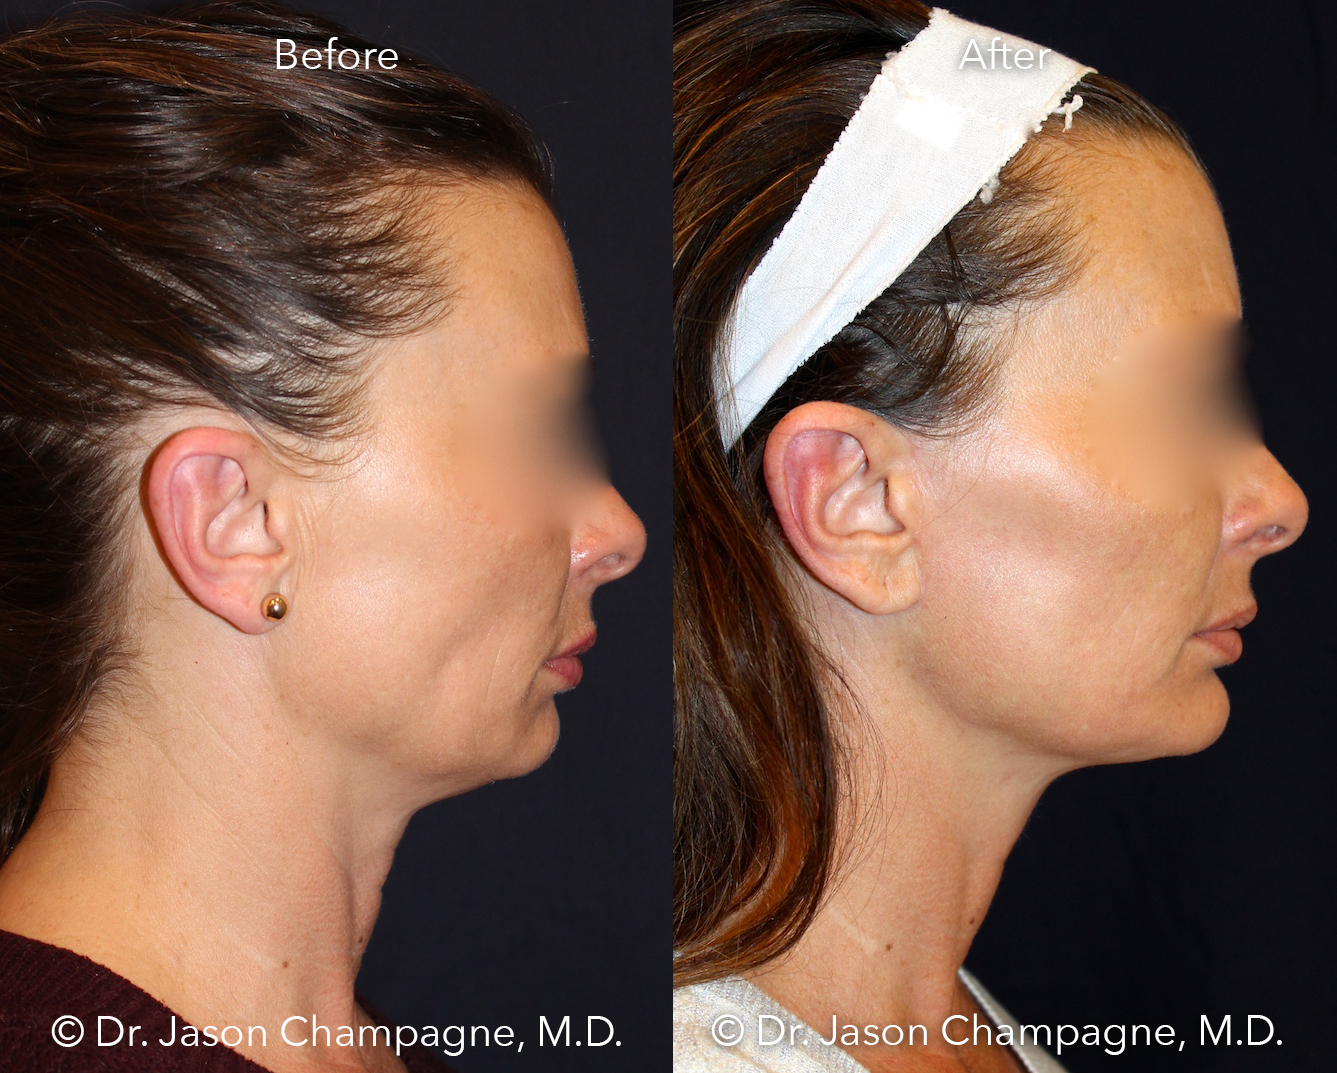 Dr-Jason-Champagne-mini facelift-necklift-chin-implant-CO2 laser-skin-resurfacing-Before-and-After-Profile.jpg